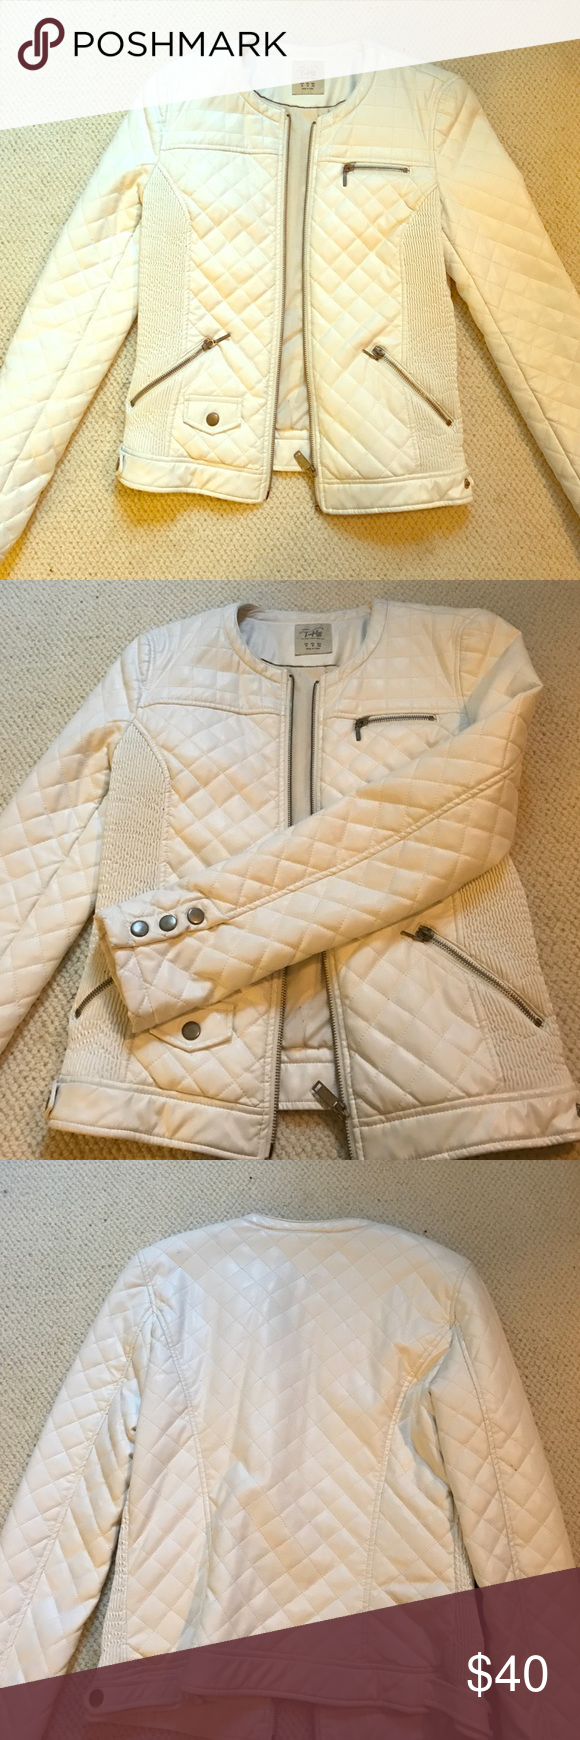 Zara Off white faux leather jacket Zara Off white faux